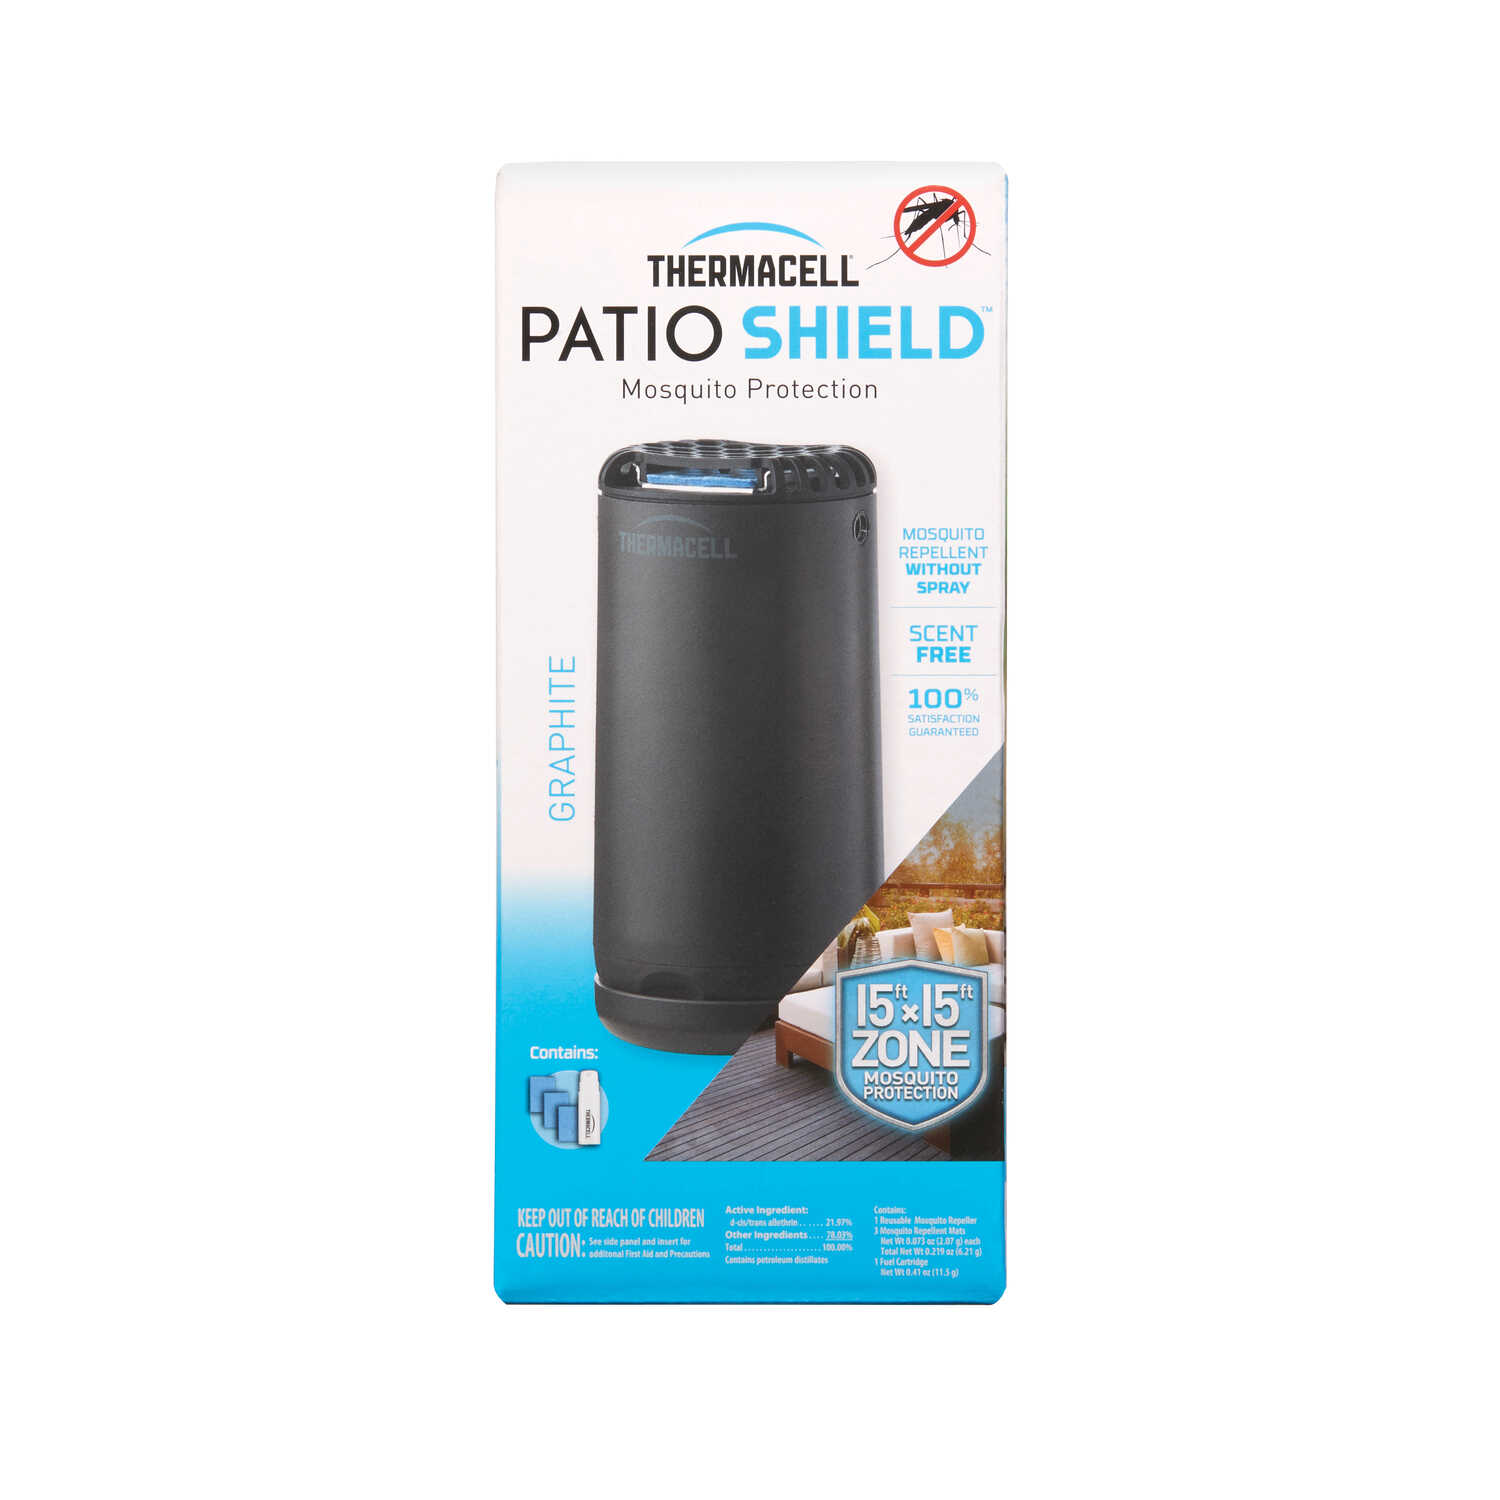 Thermacell  Patio Shield  Insect Repellent Device  For Mosquitoes 1 pk